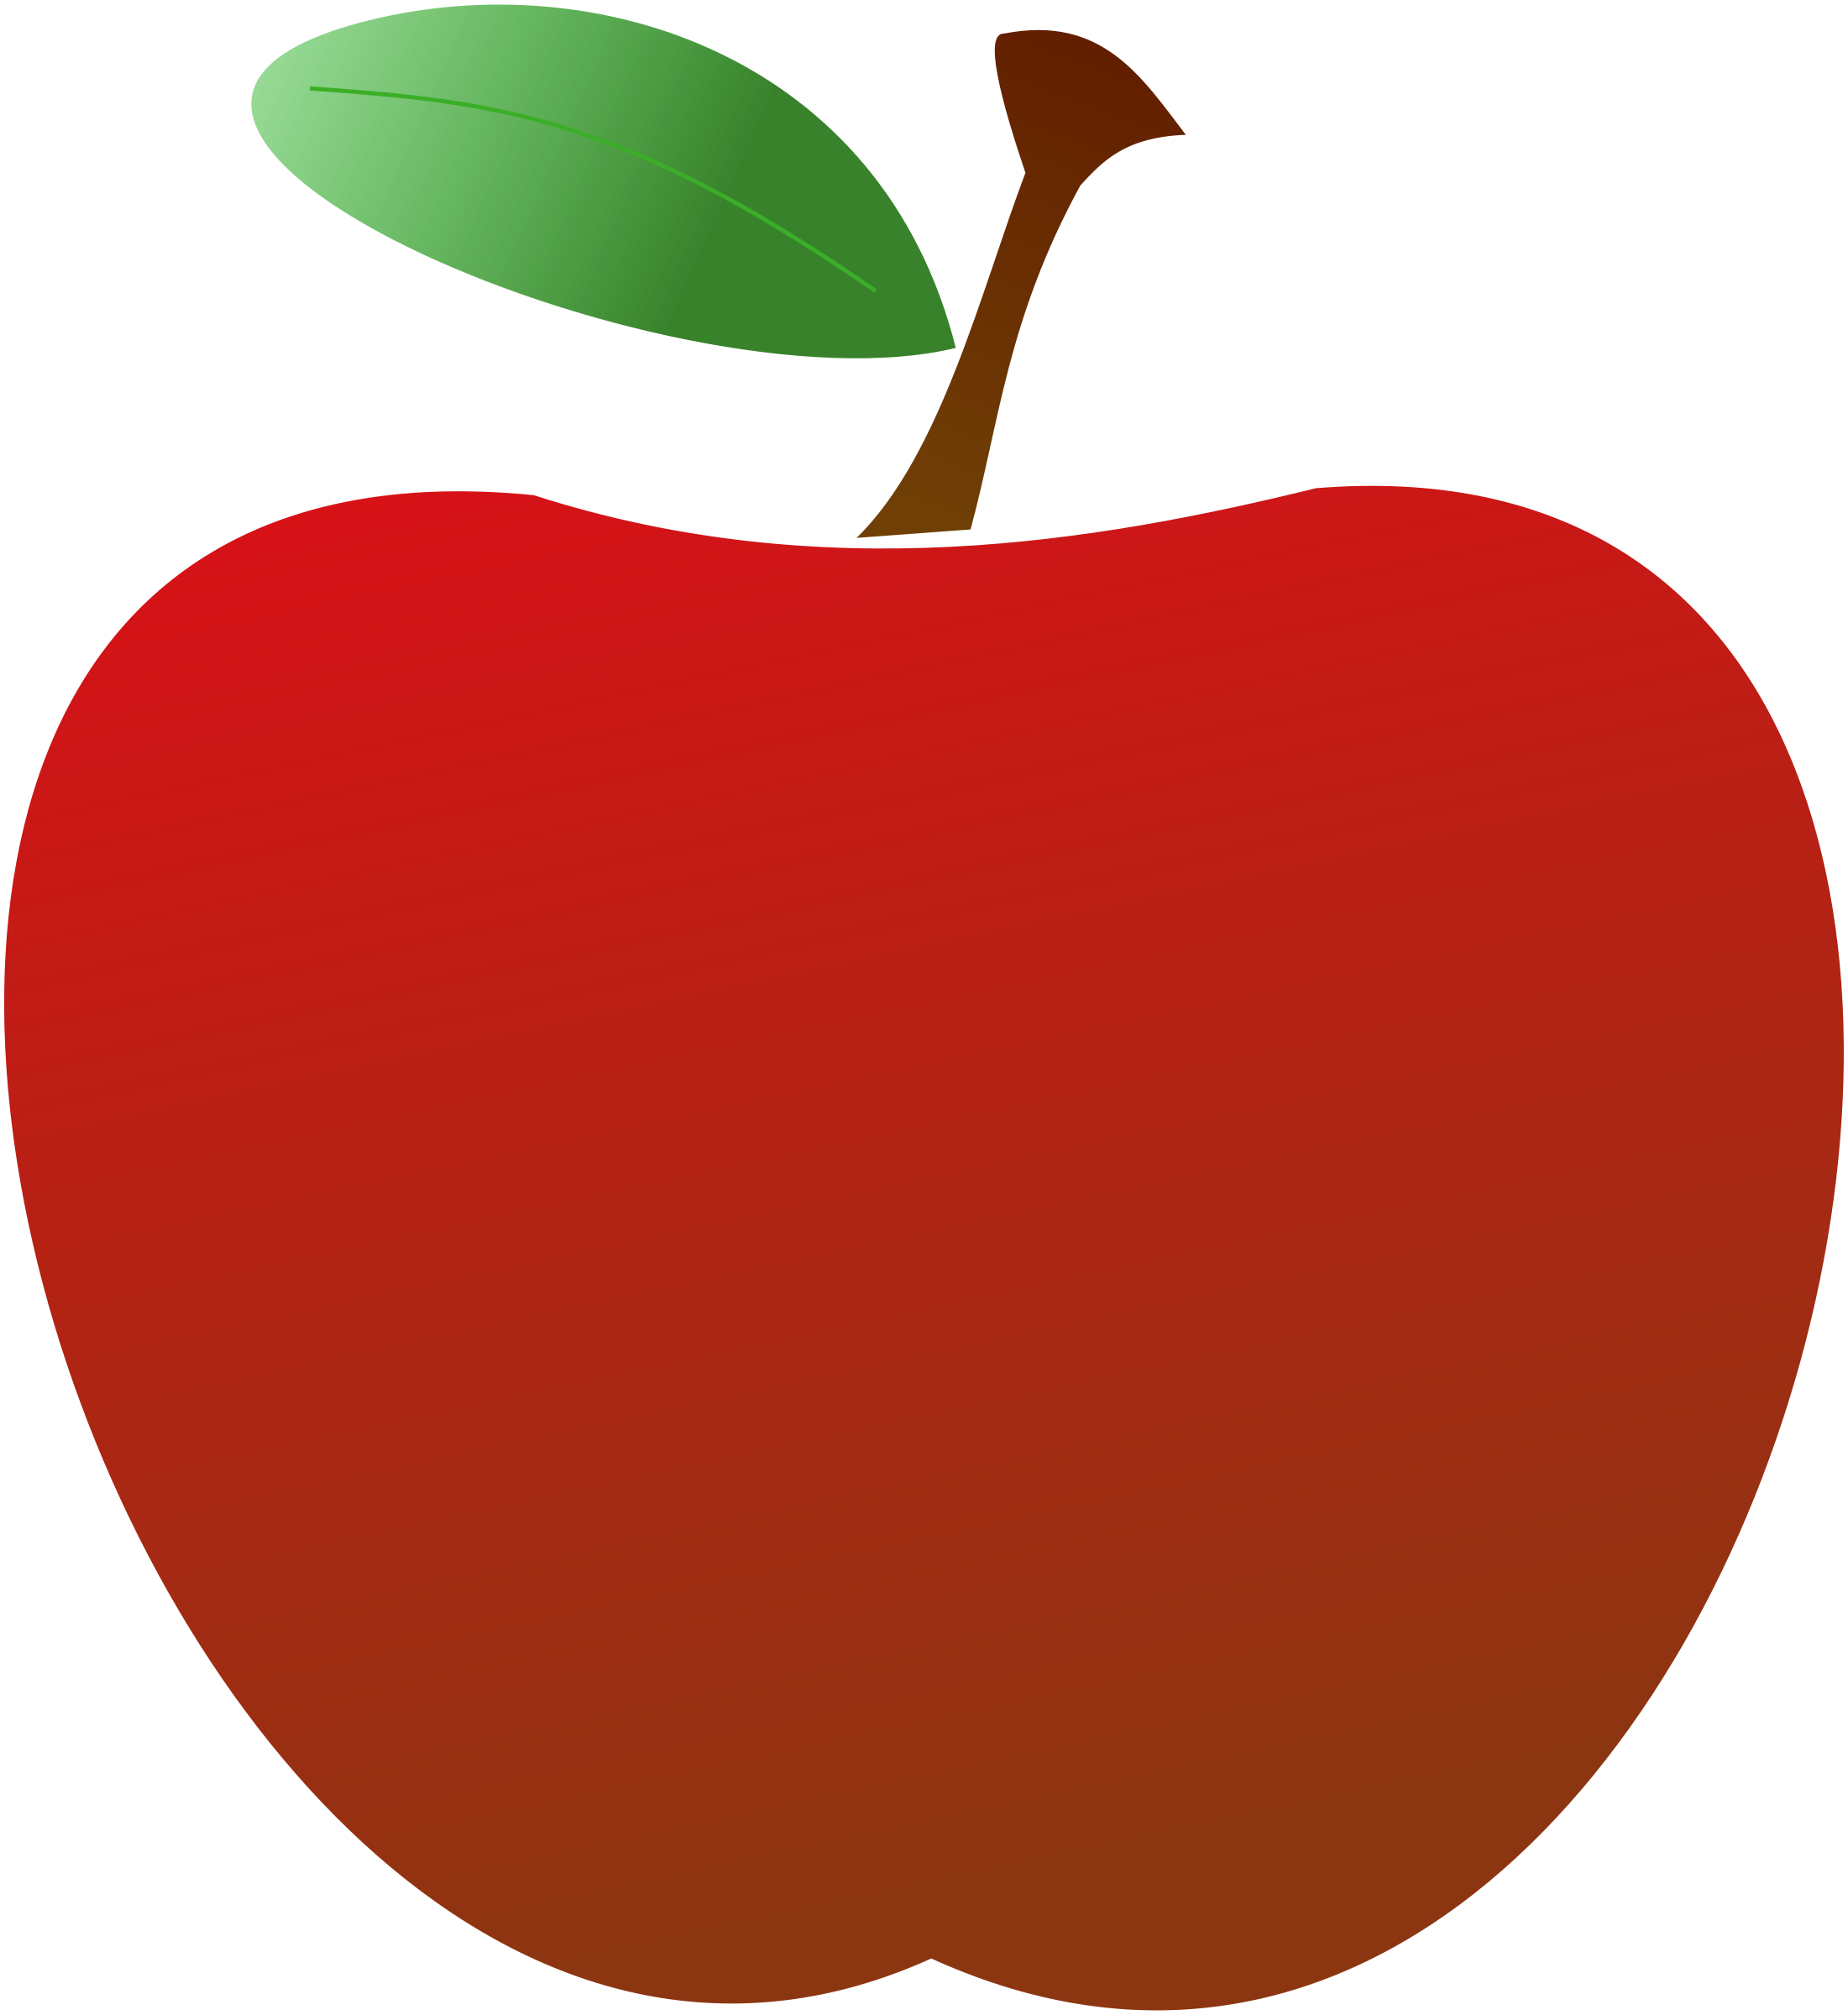 Cut apple clipart clipart freeuse Teacher Apple Clipart | Clipart Panda - Free Clipart Images ... clipart freeuse